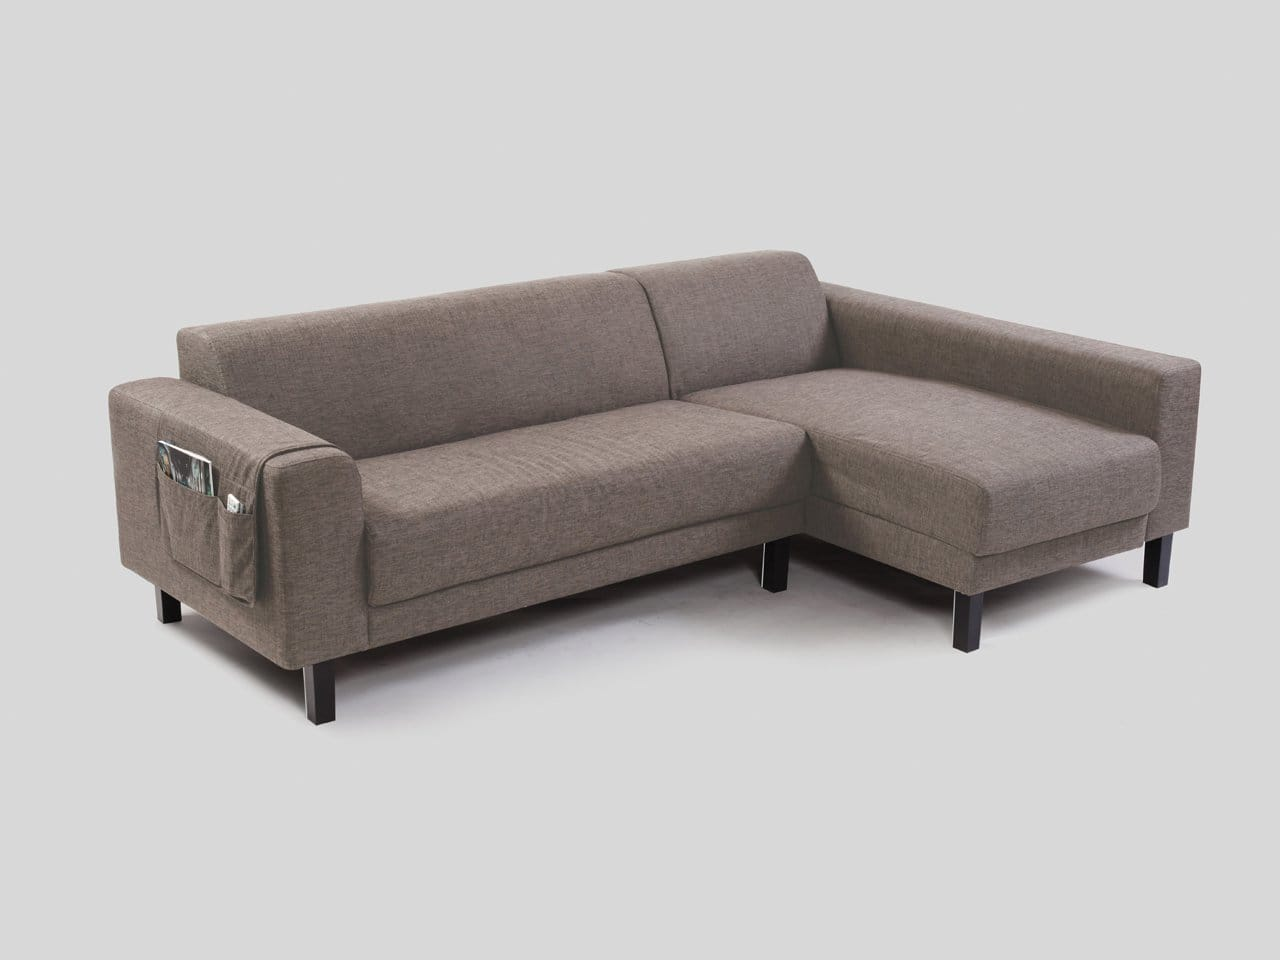 L Shaped Fabric Sofa Singapore Brokeasshome Com